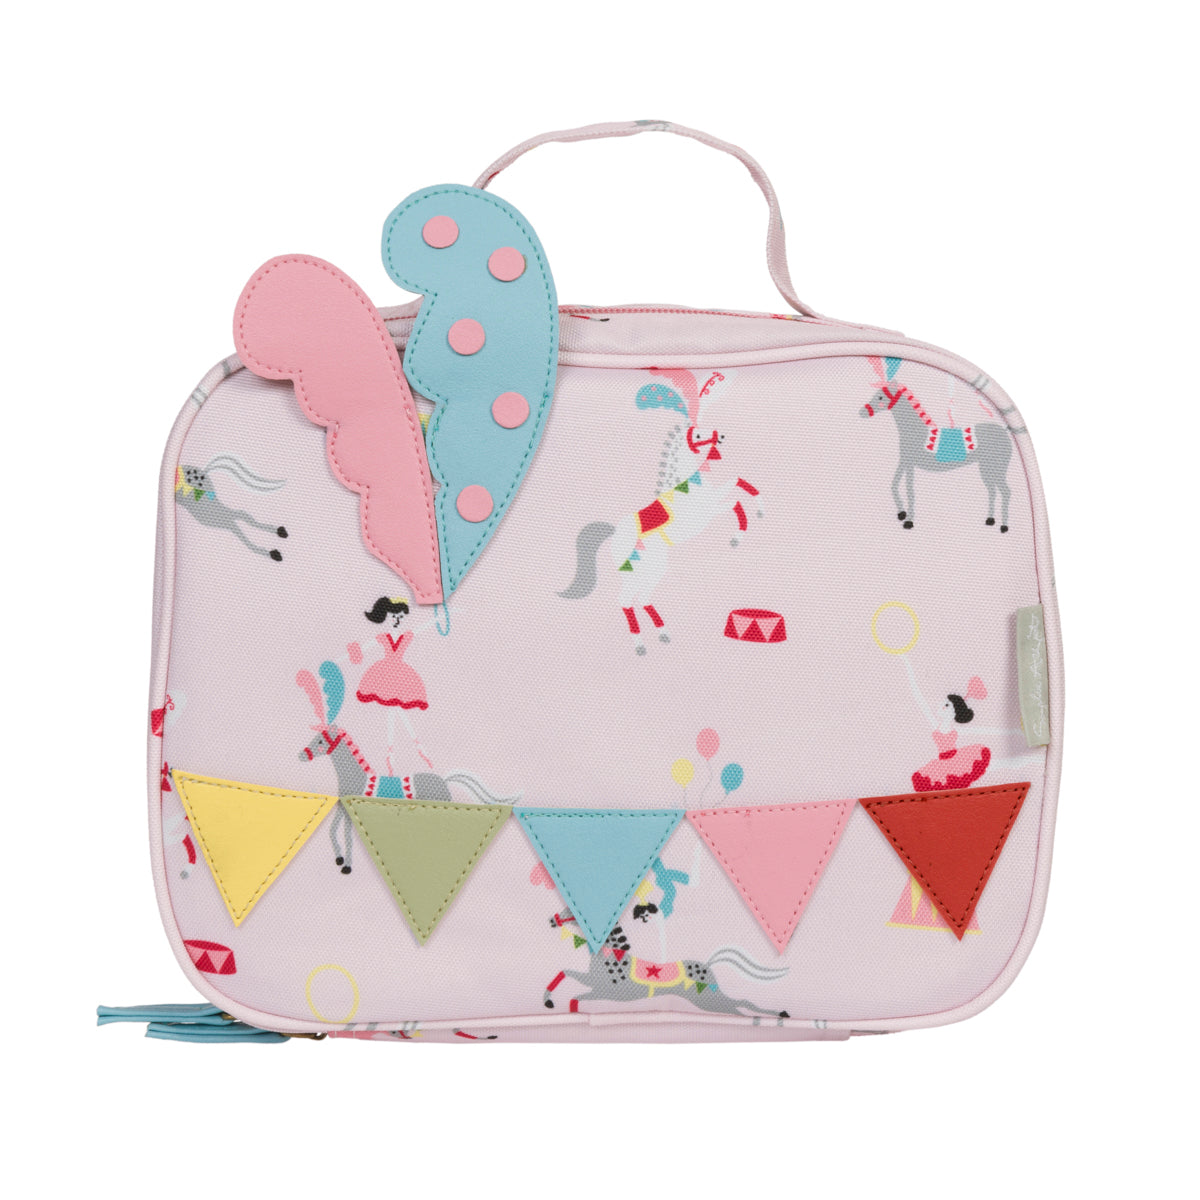 Fairground Ponies Lunch Bag by Sophie Allport